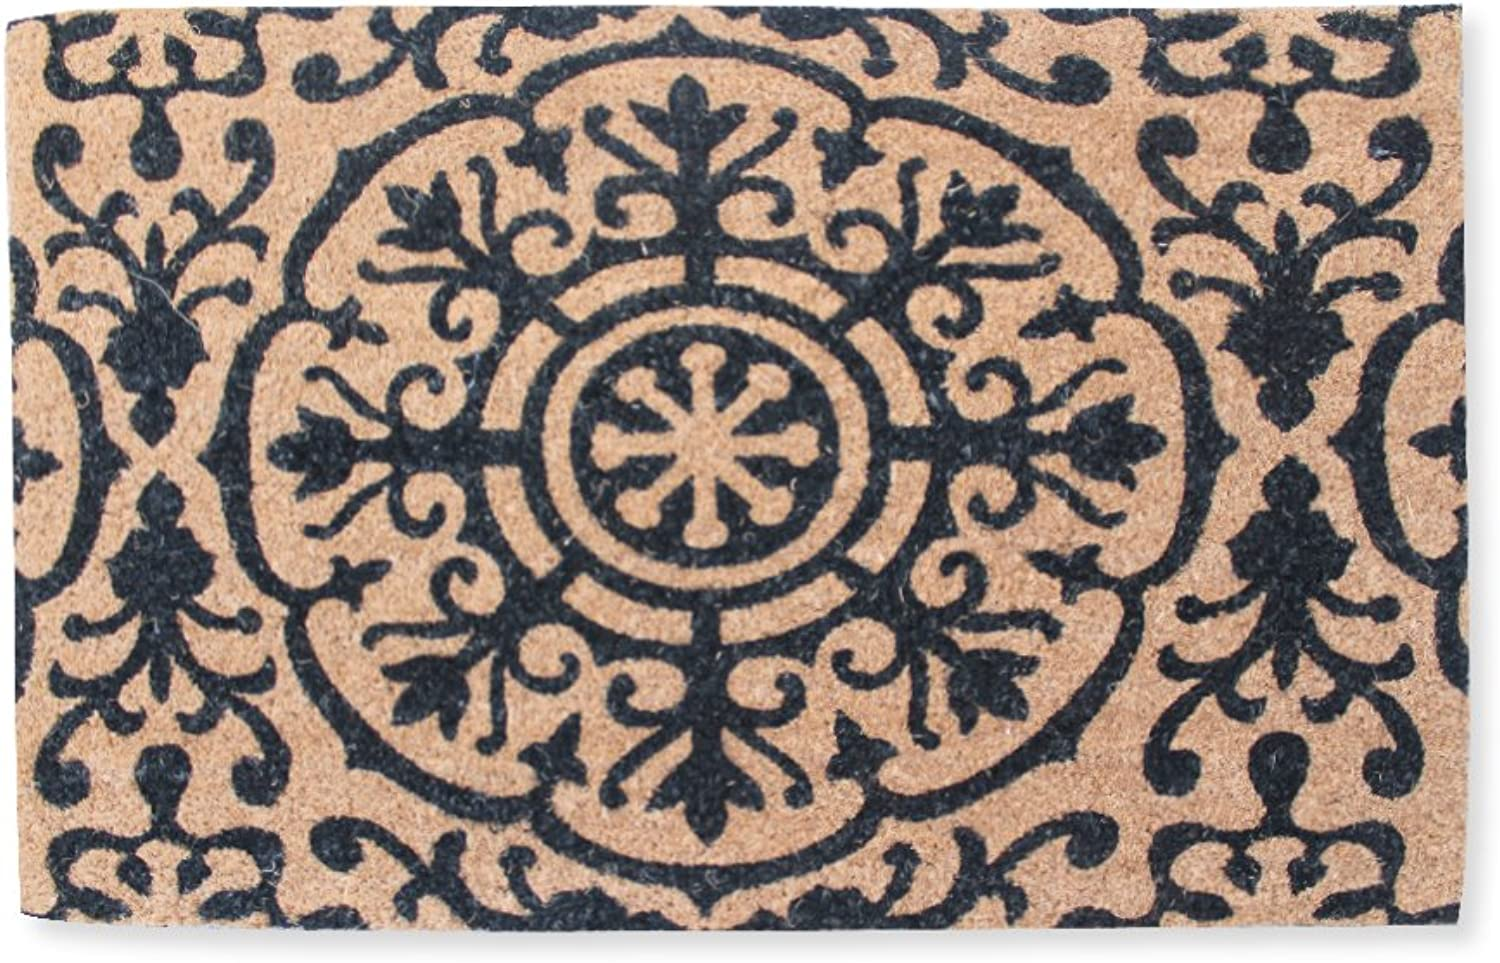 A1 HOME COLLECTIONS First Impression Entry Doormat, pinkanne Coir, Large(24 x36 )(PT2005)